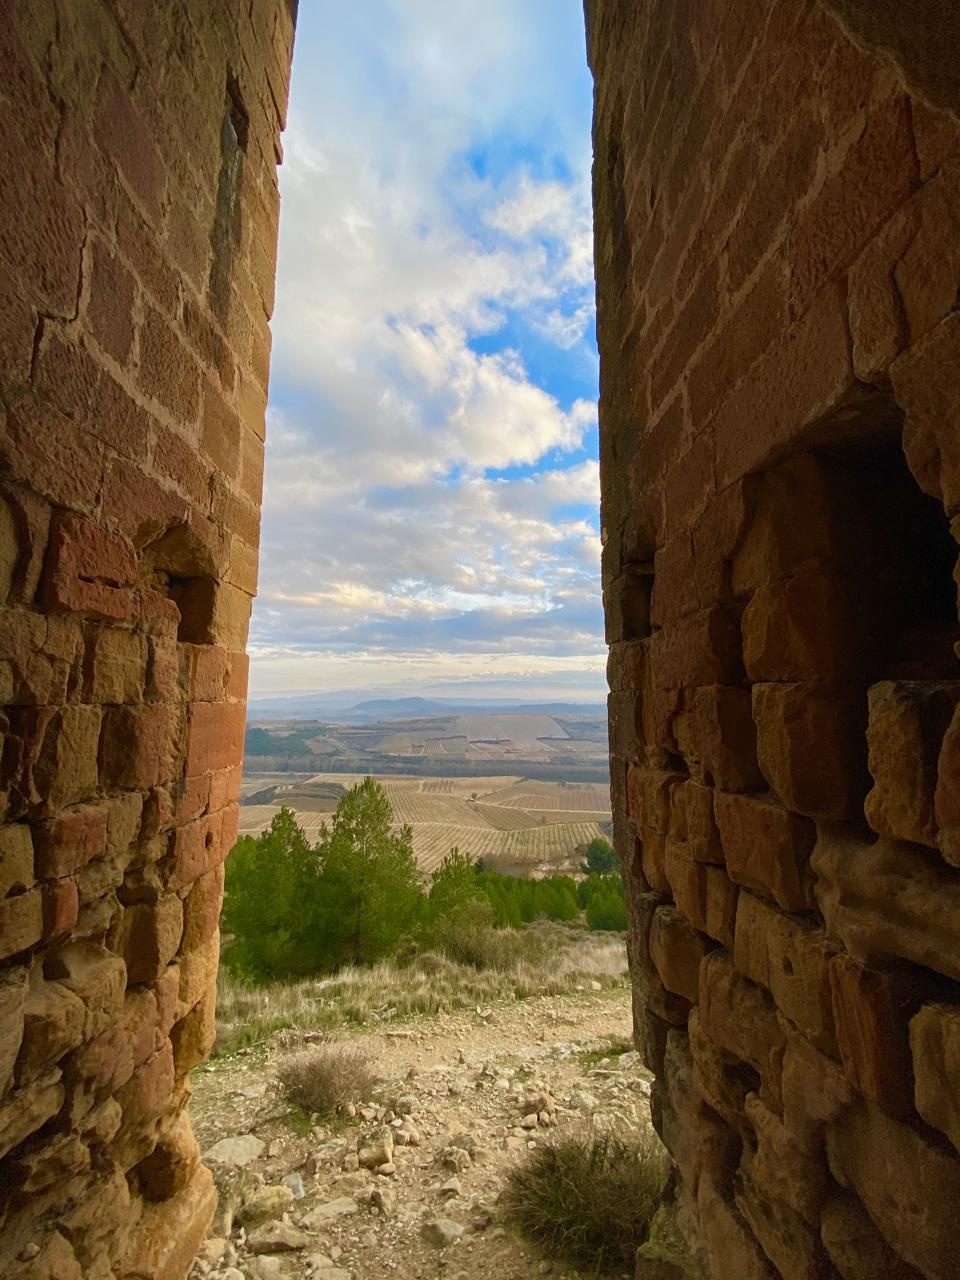 Looking out from Castillo de Davalillo, near Haro